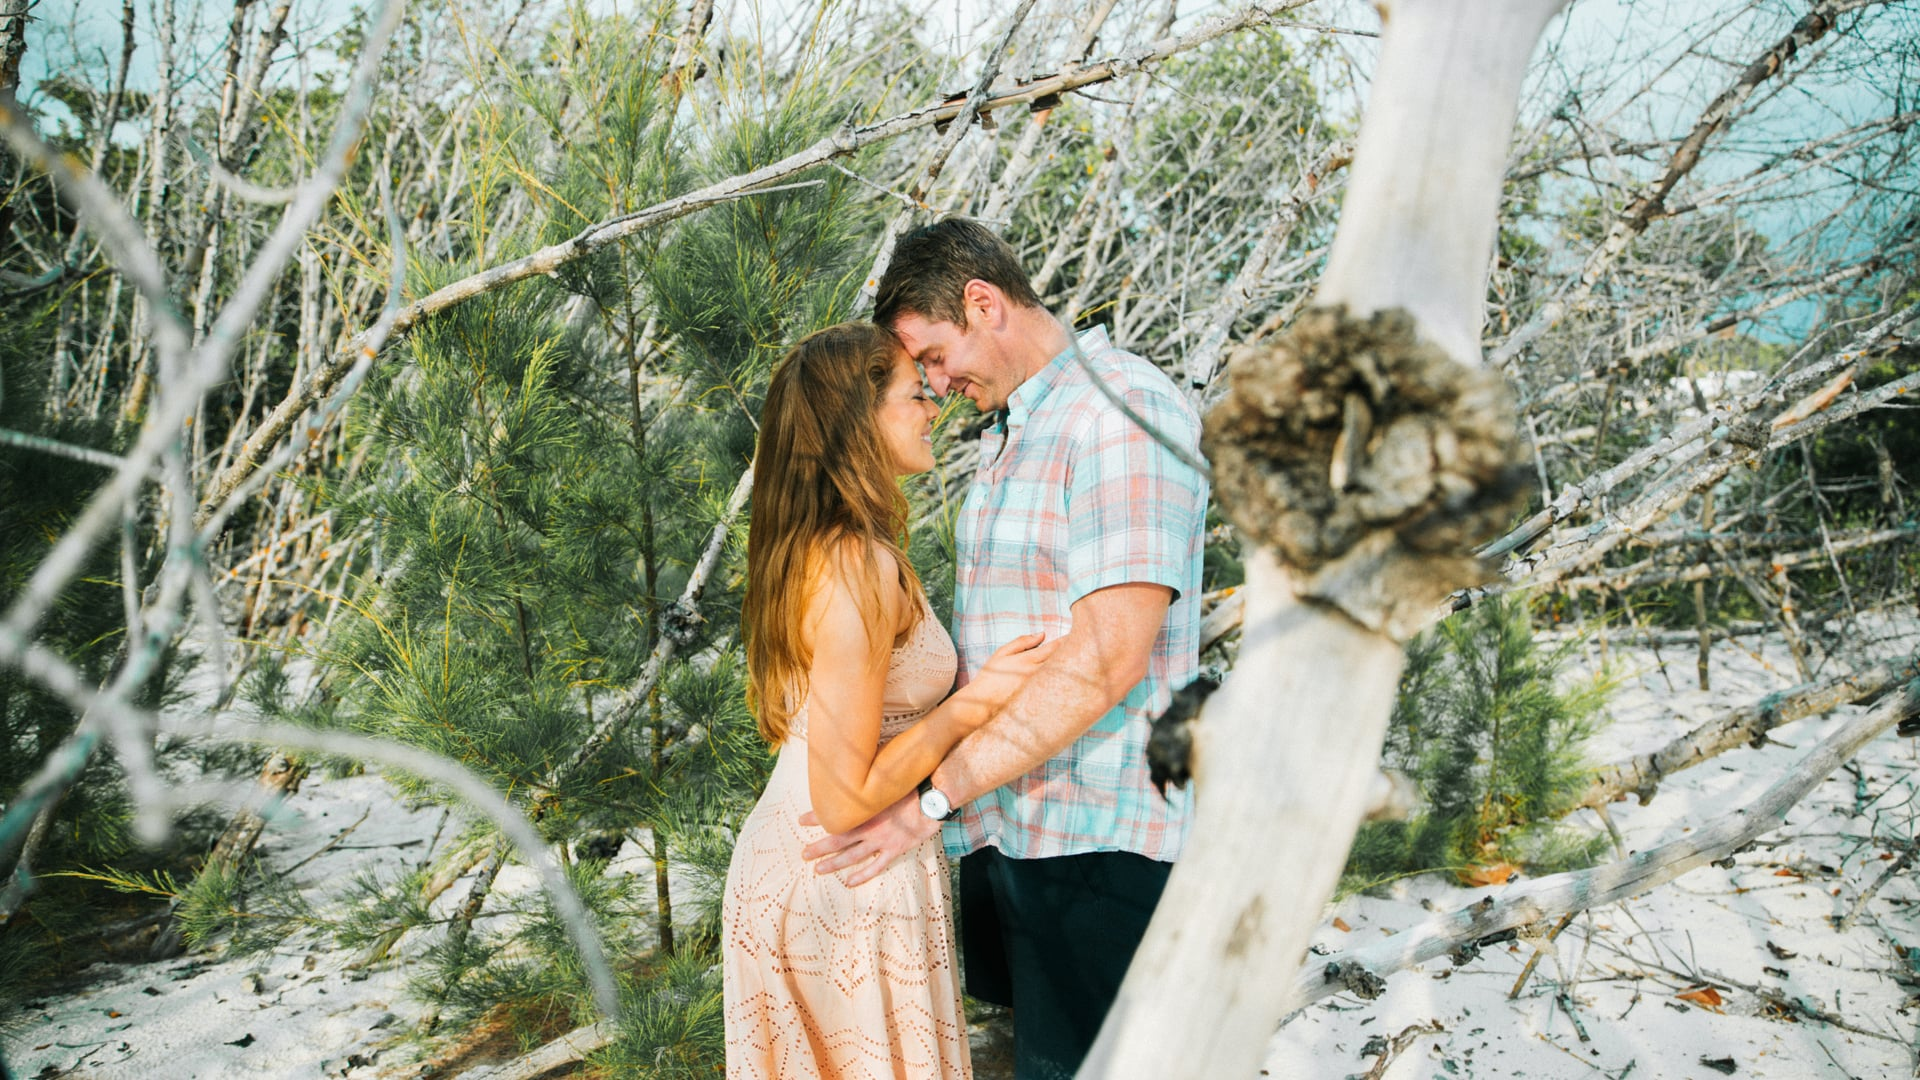 Ashley & Tyler    Save the Date 4.25.20